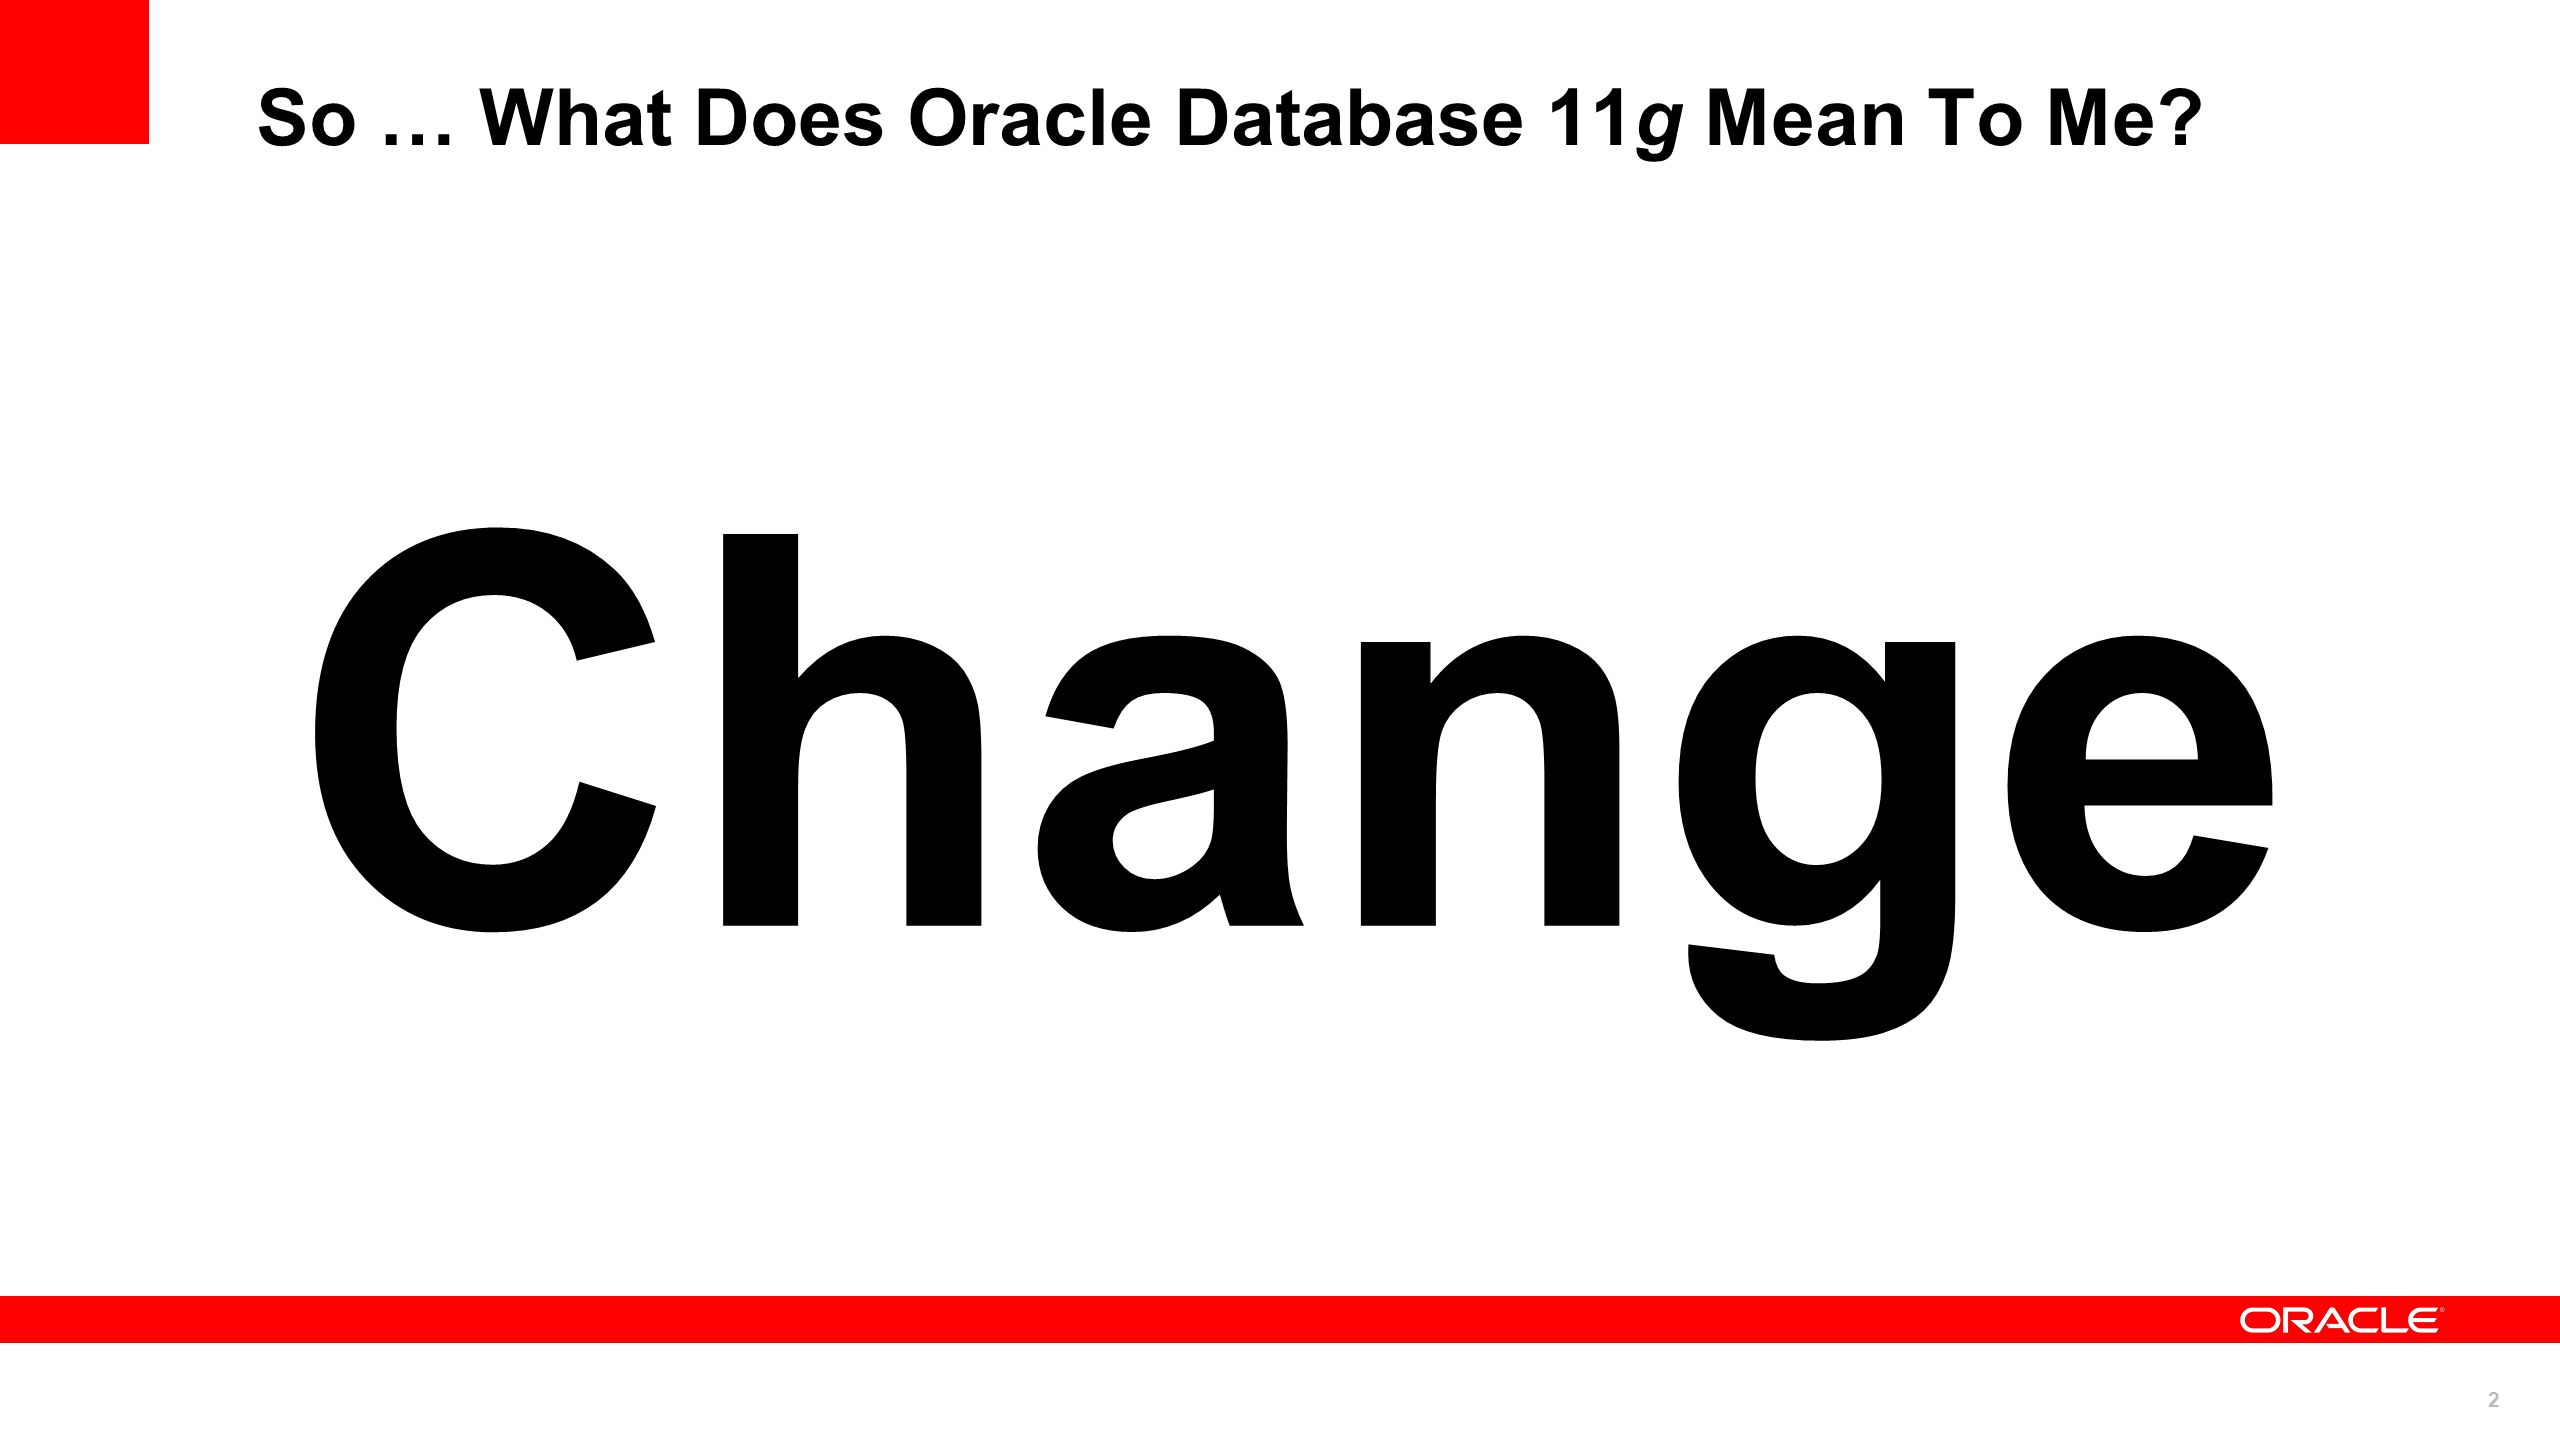 So … What Does Oracle Database 11g Mean To Me